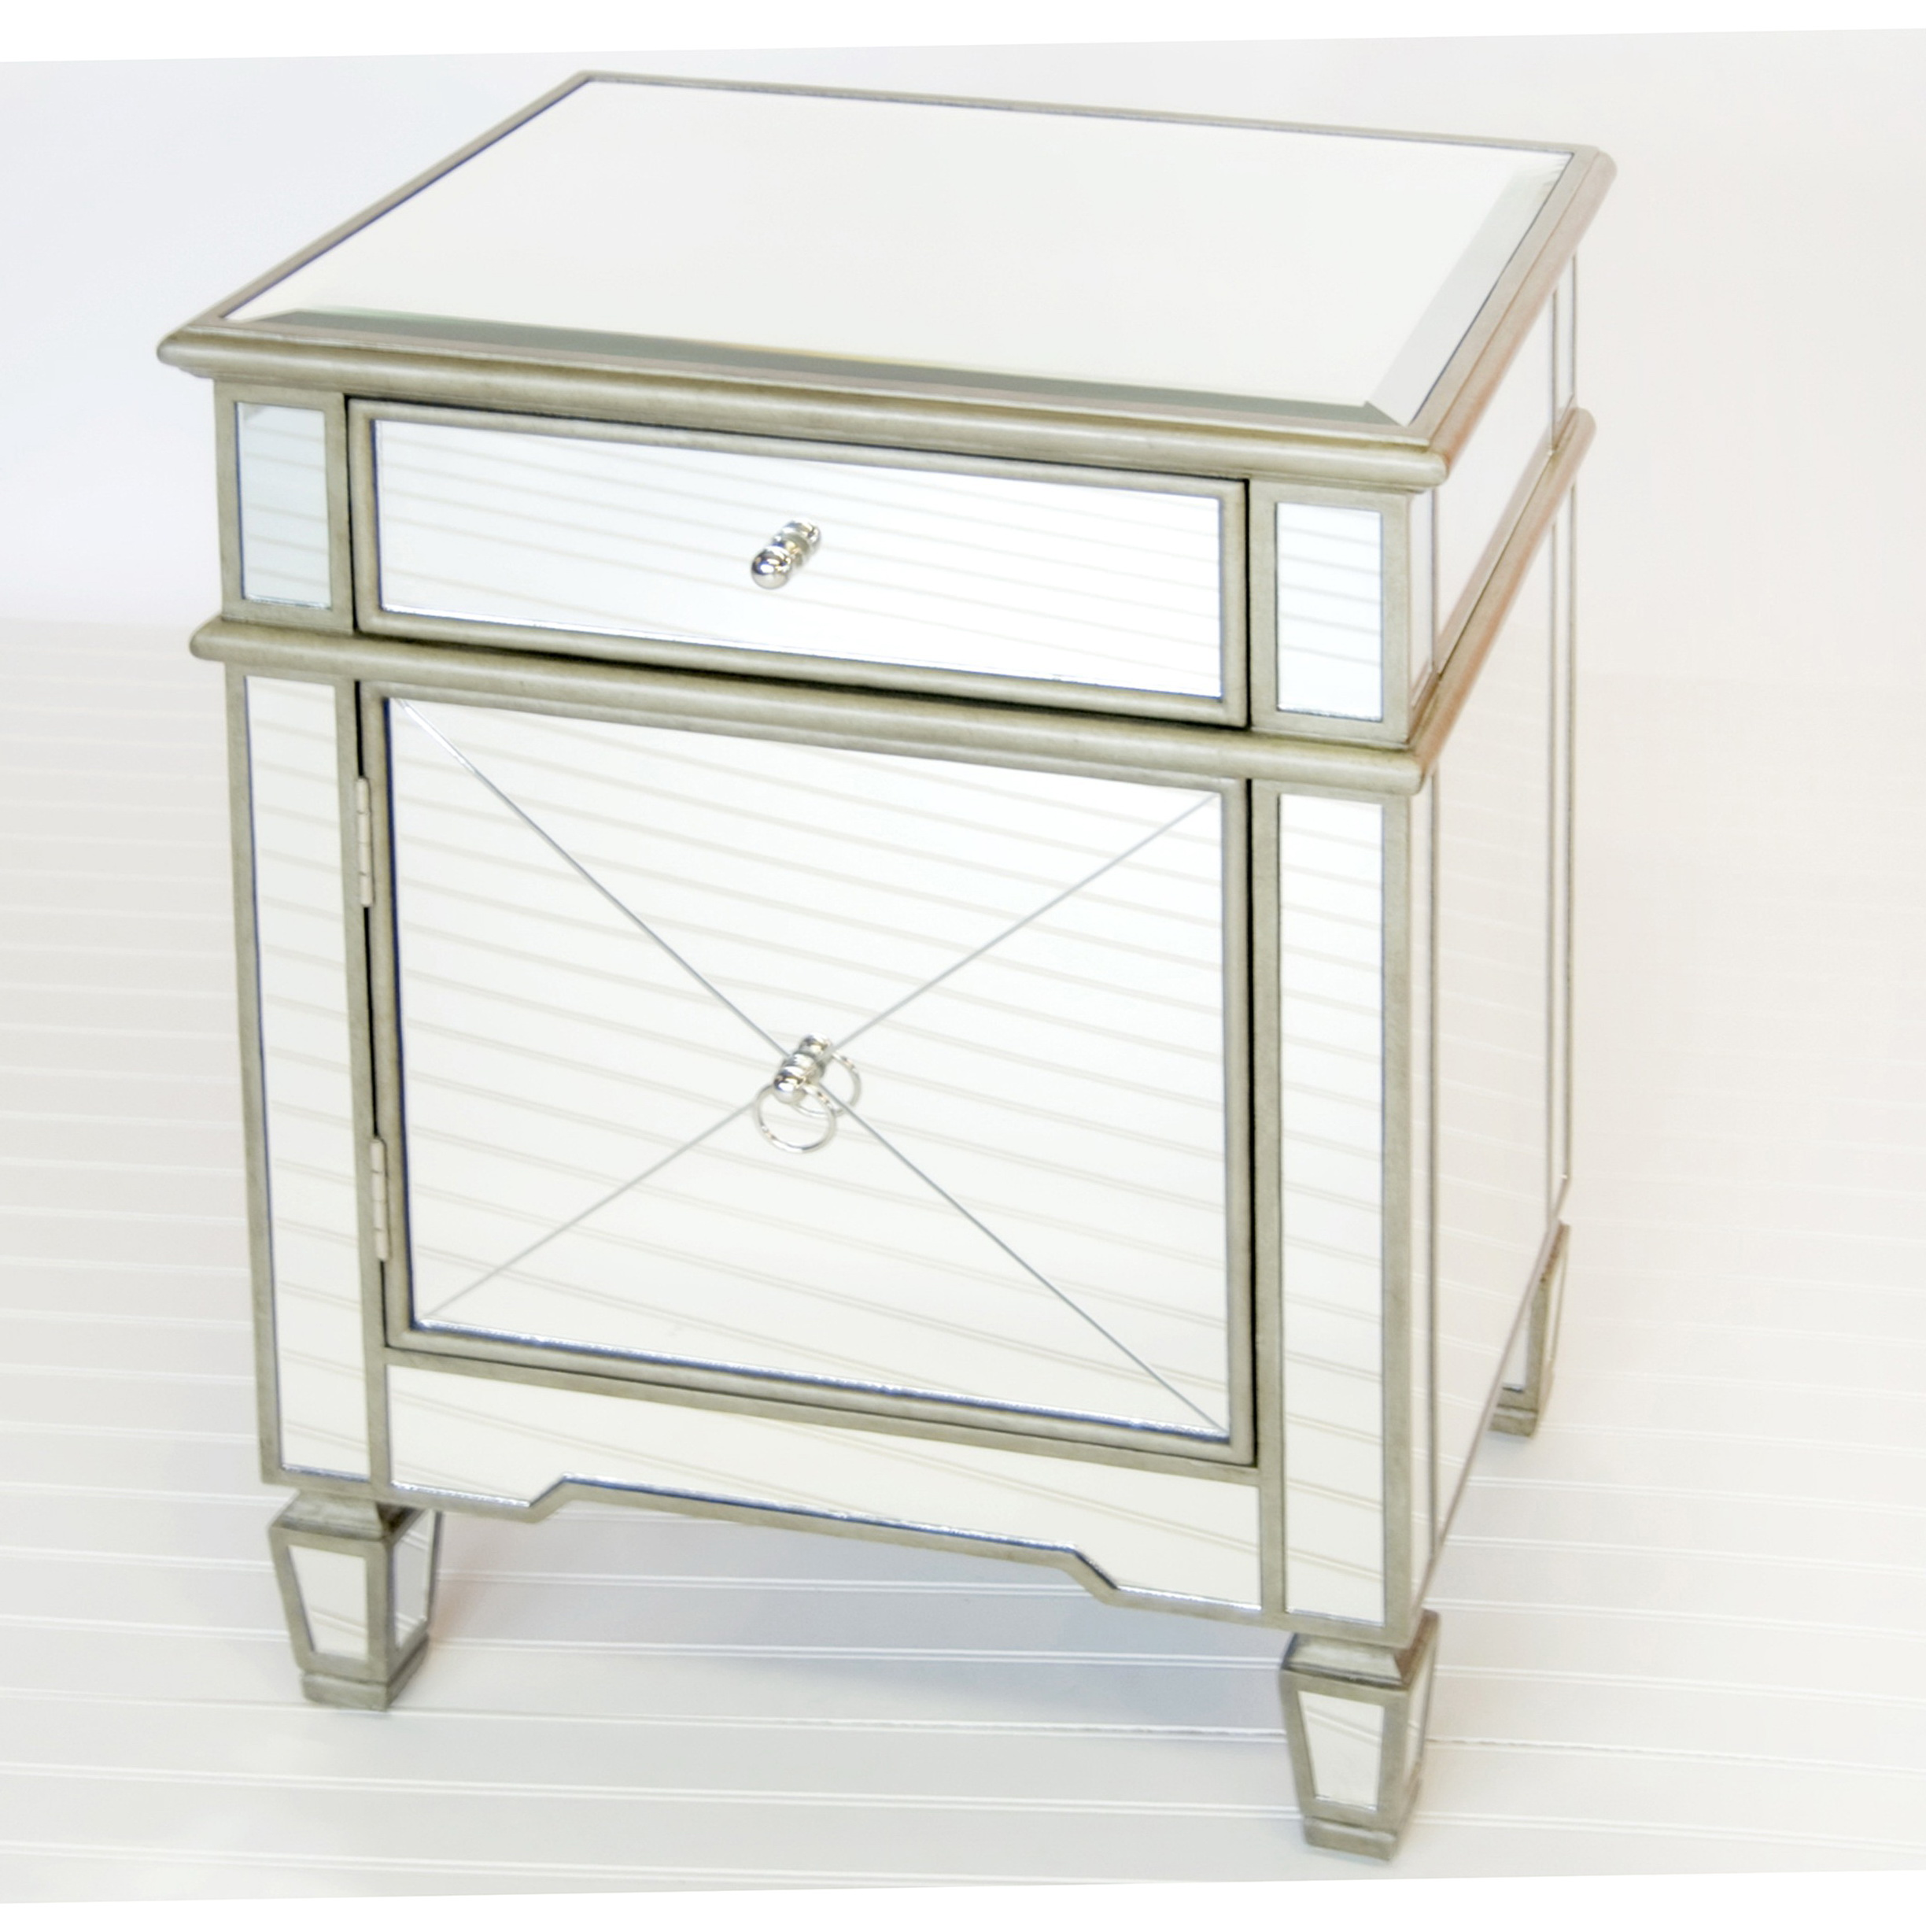 Mirrored End Table With Drawers